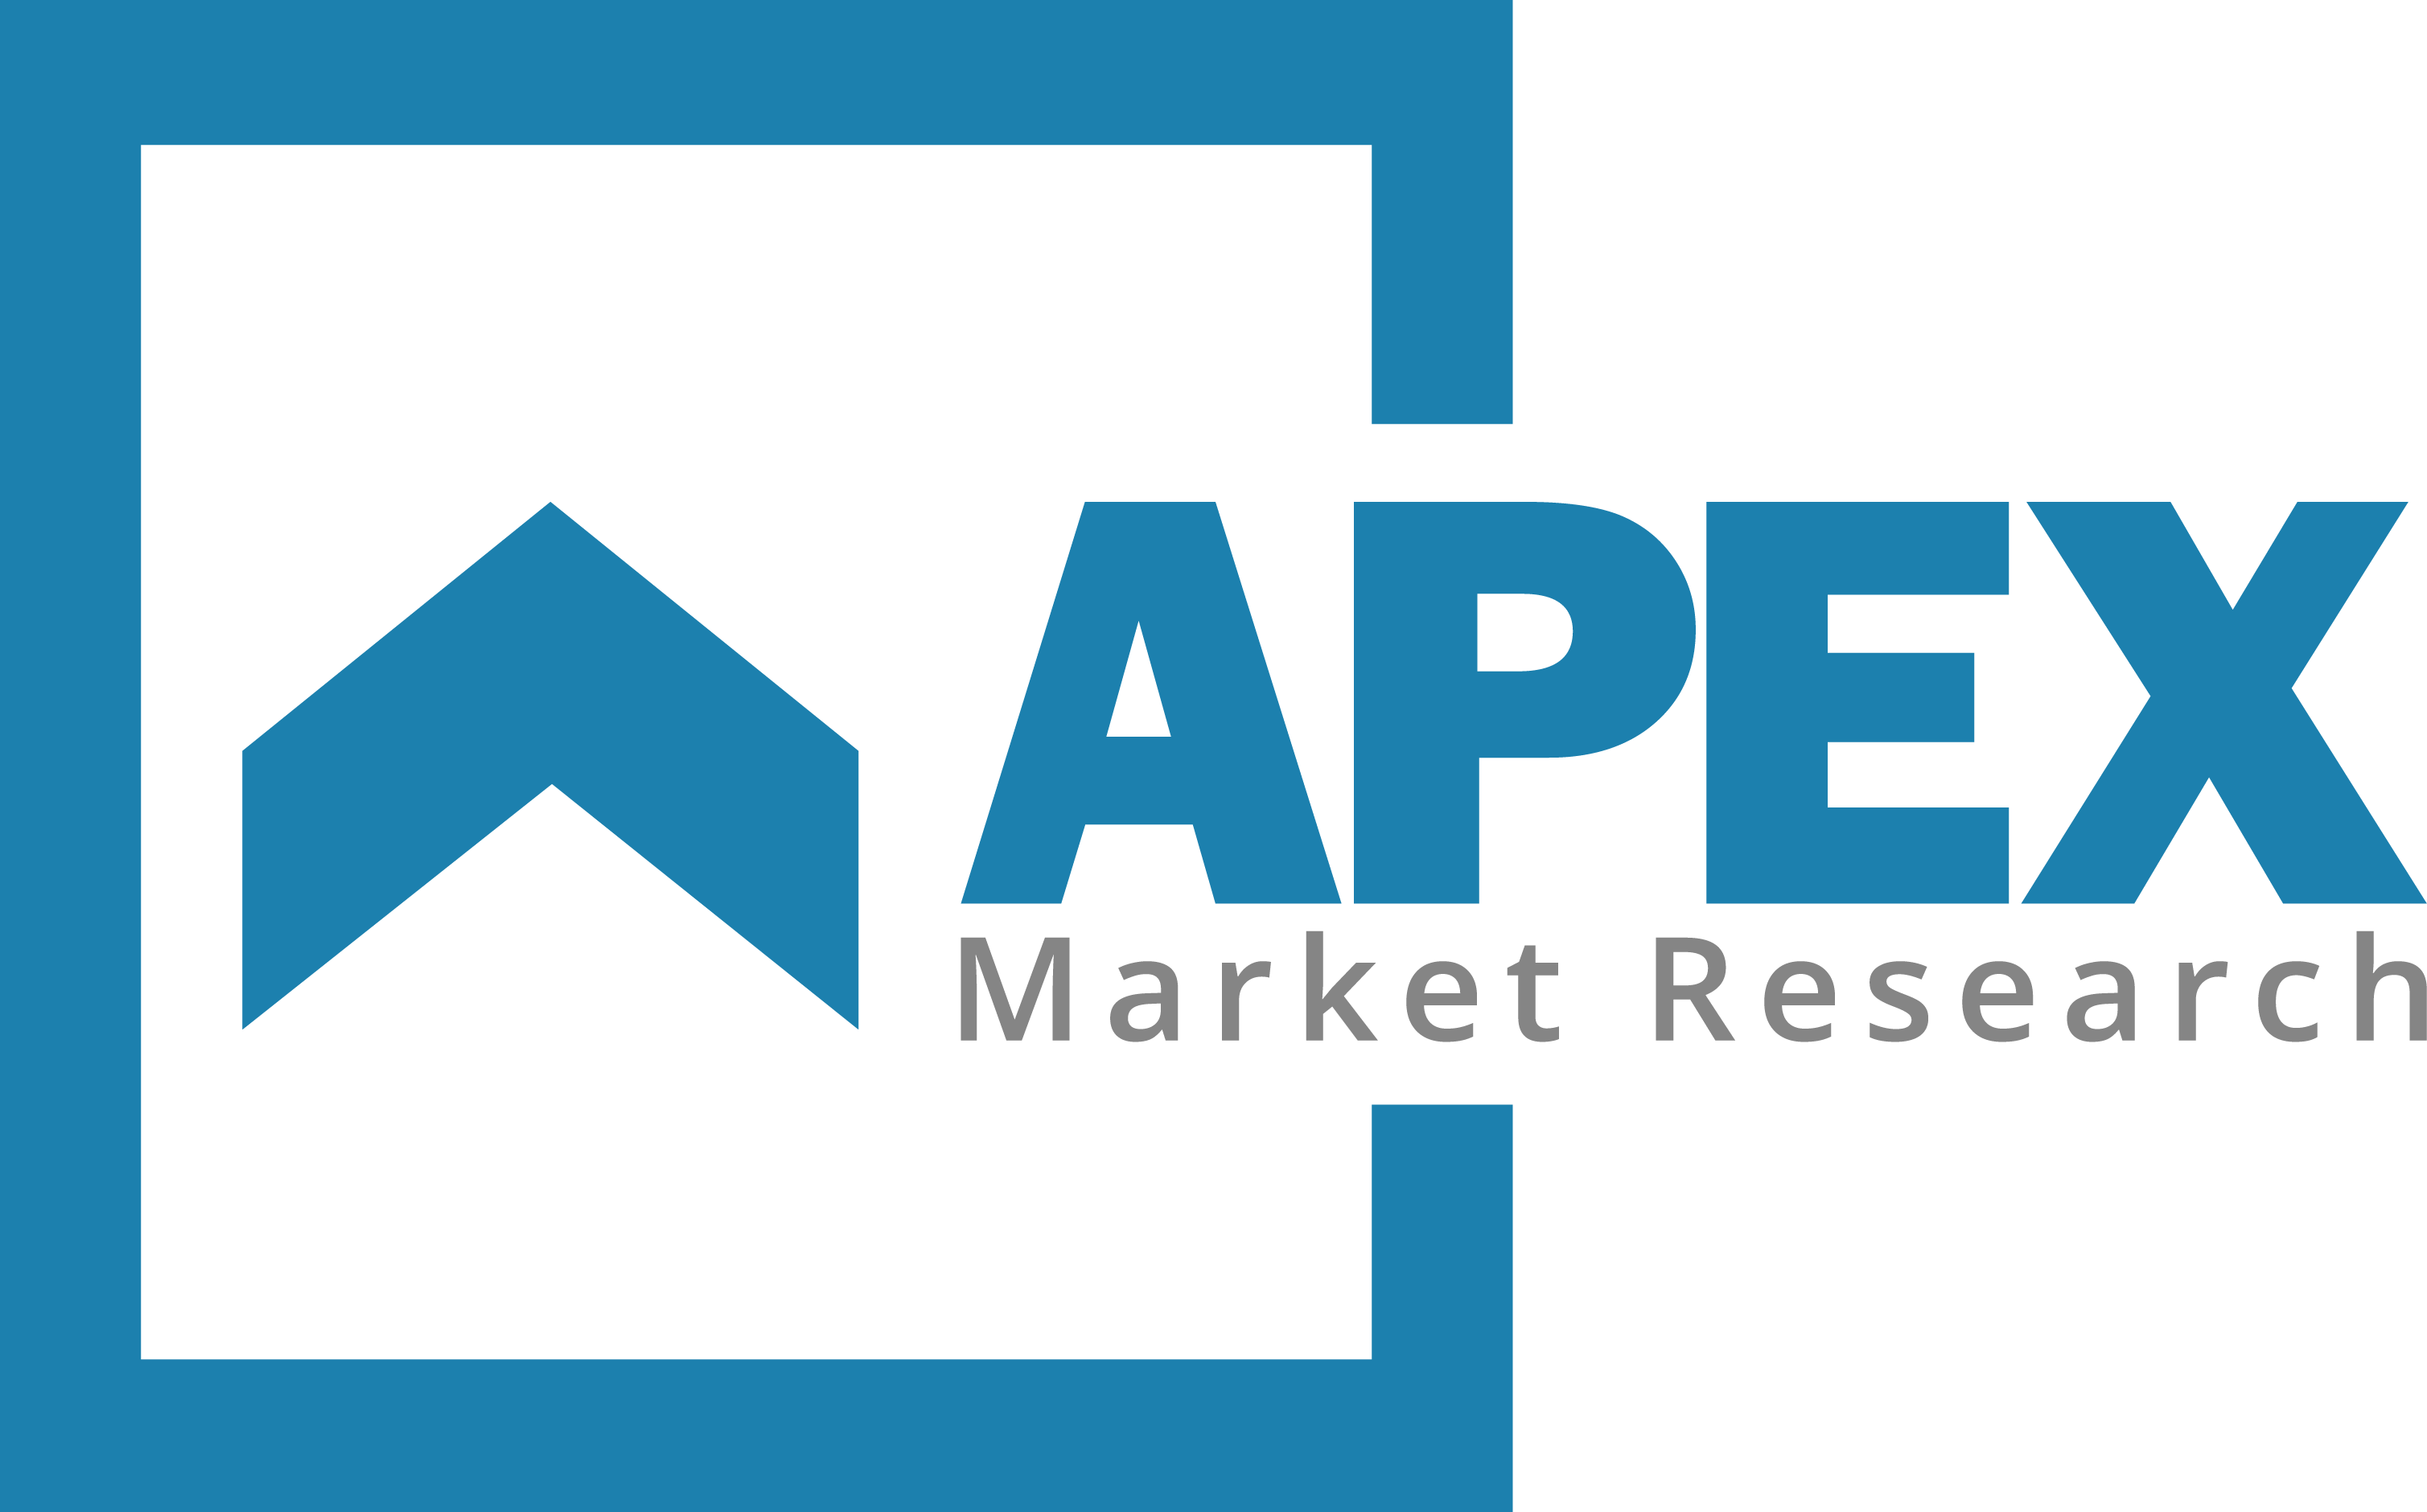 apexmarketsresearch